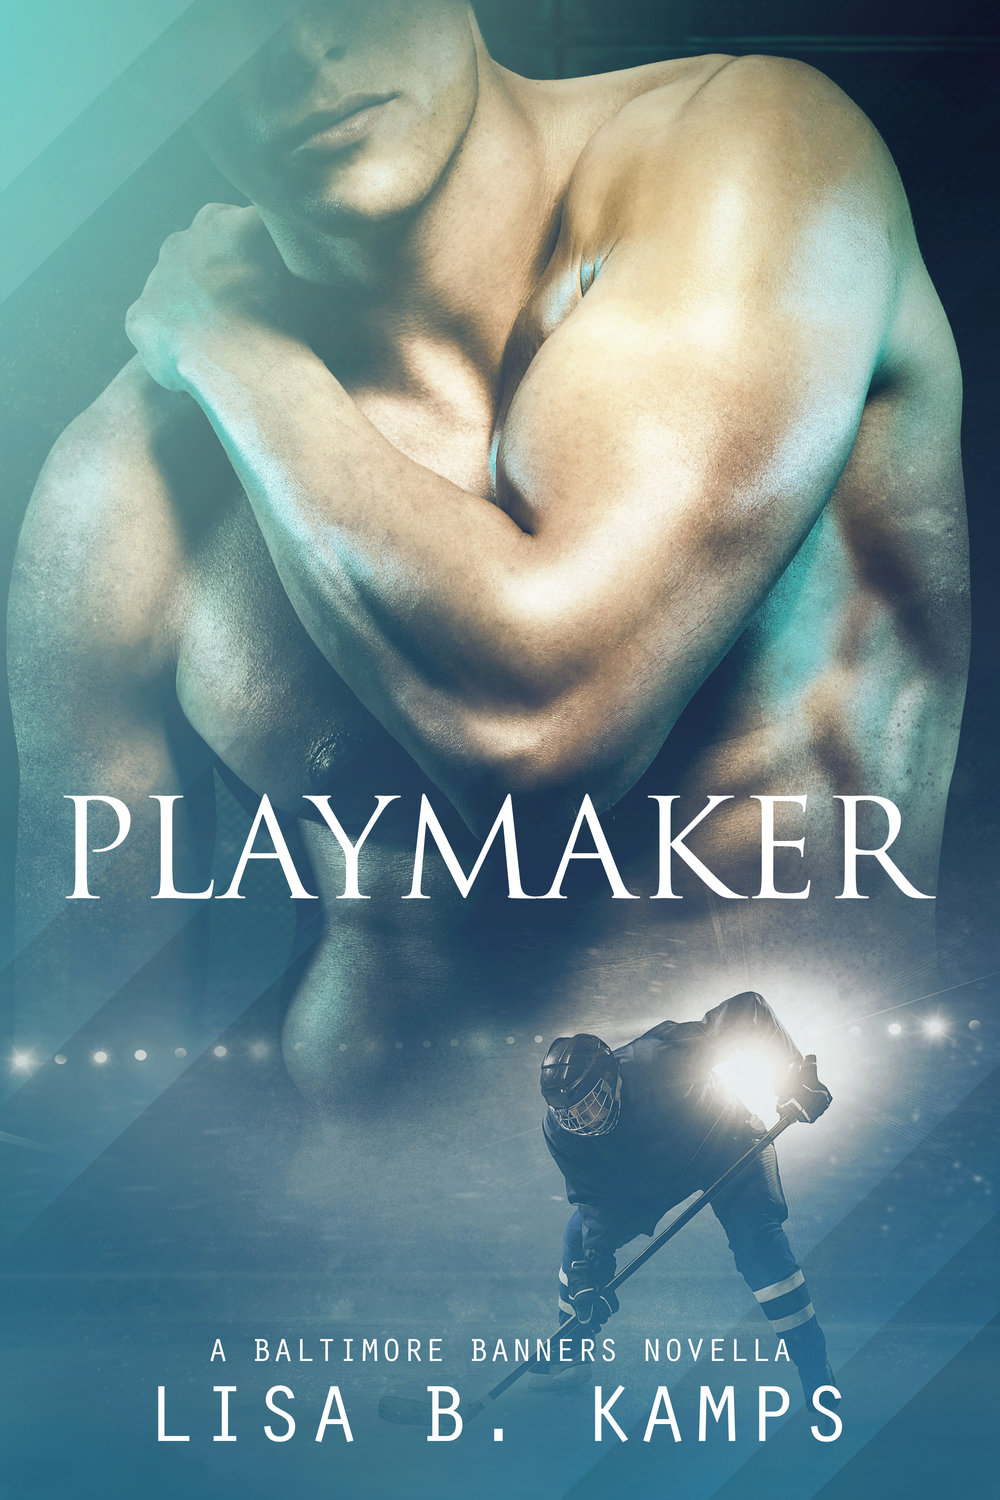 Playmaker-Customdesign-JayAheer2017-eBook-cover.jpg